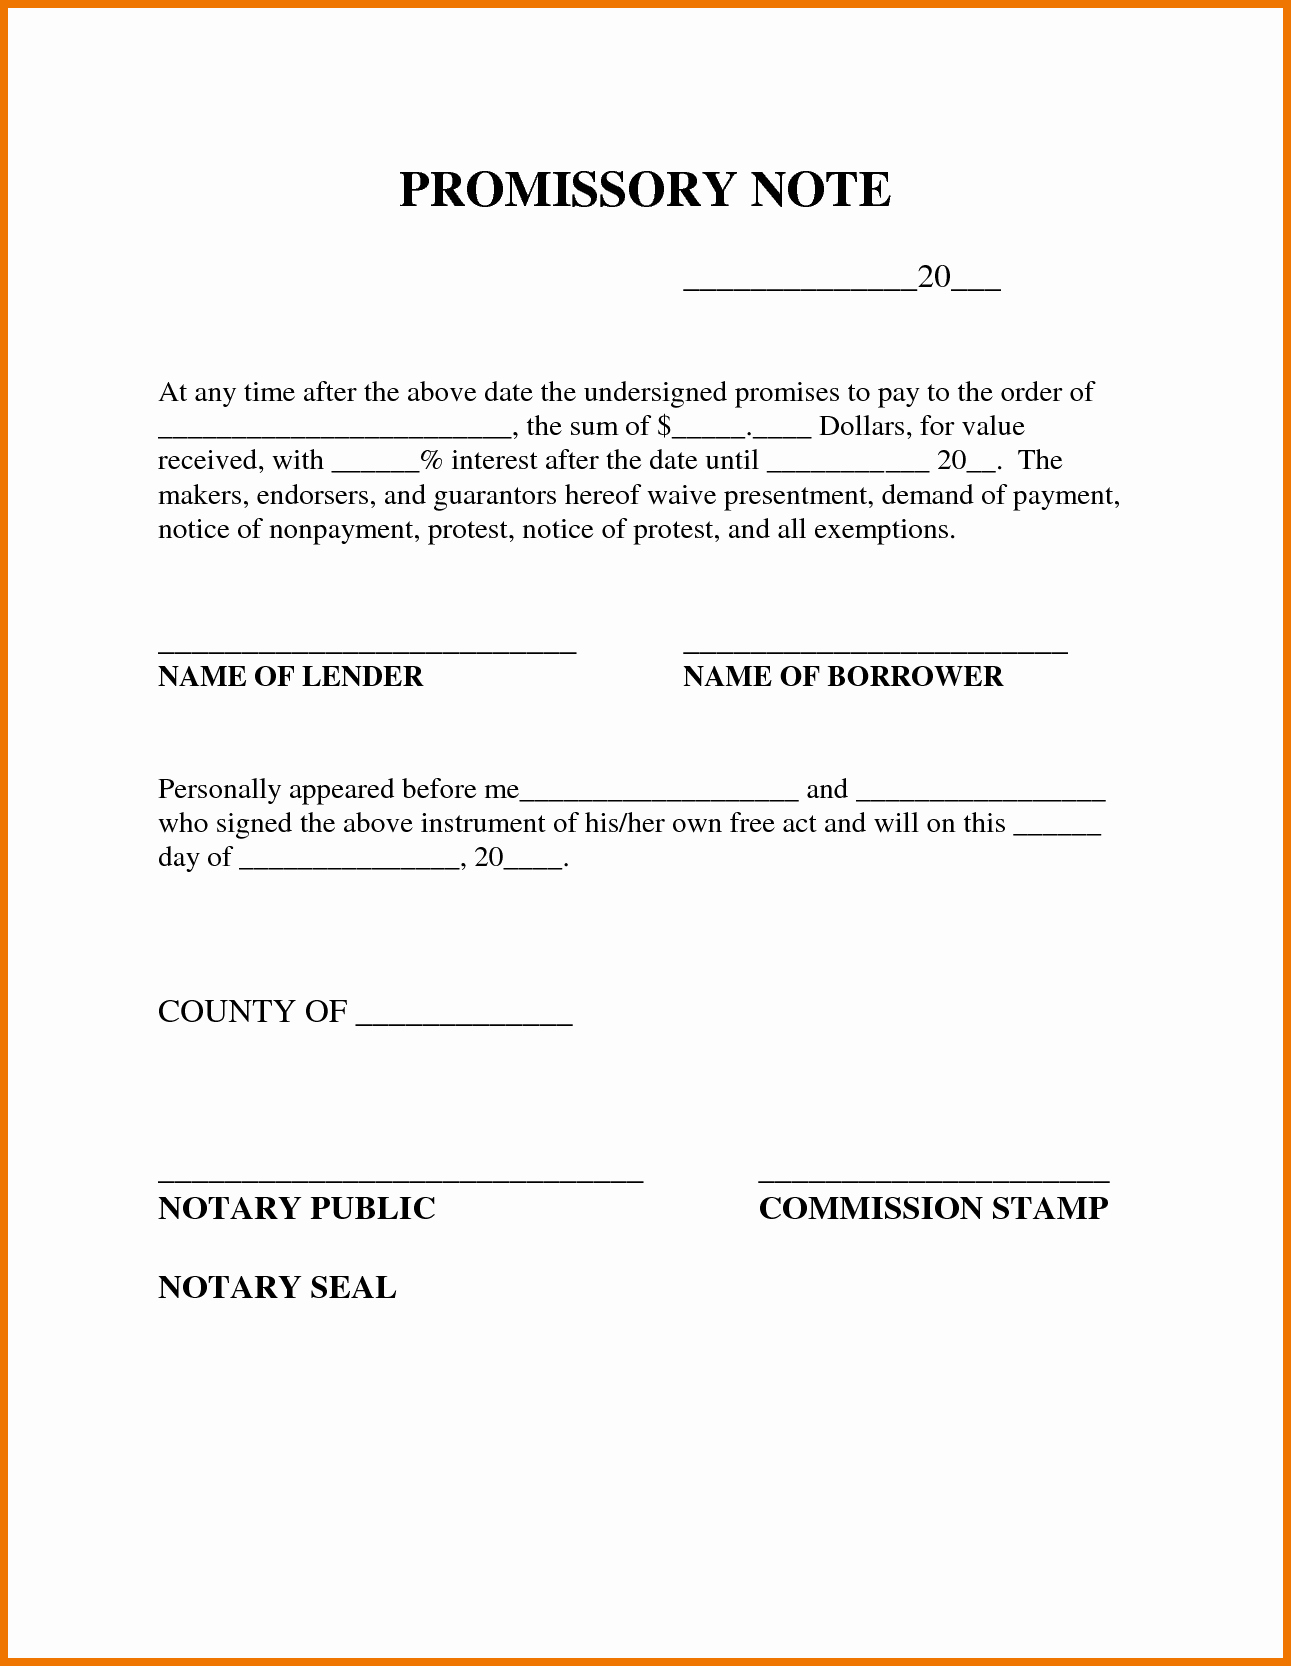 Simple Promissory Note Sample Inspirational Promissory Note Template From Borrower to Lender Vatansun